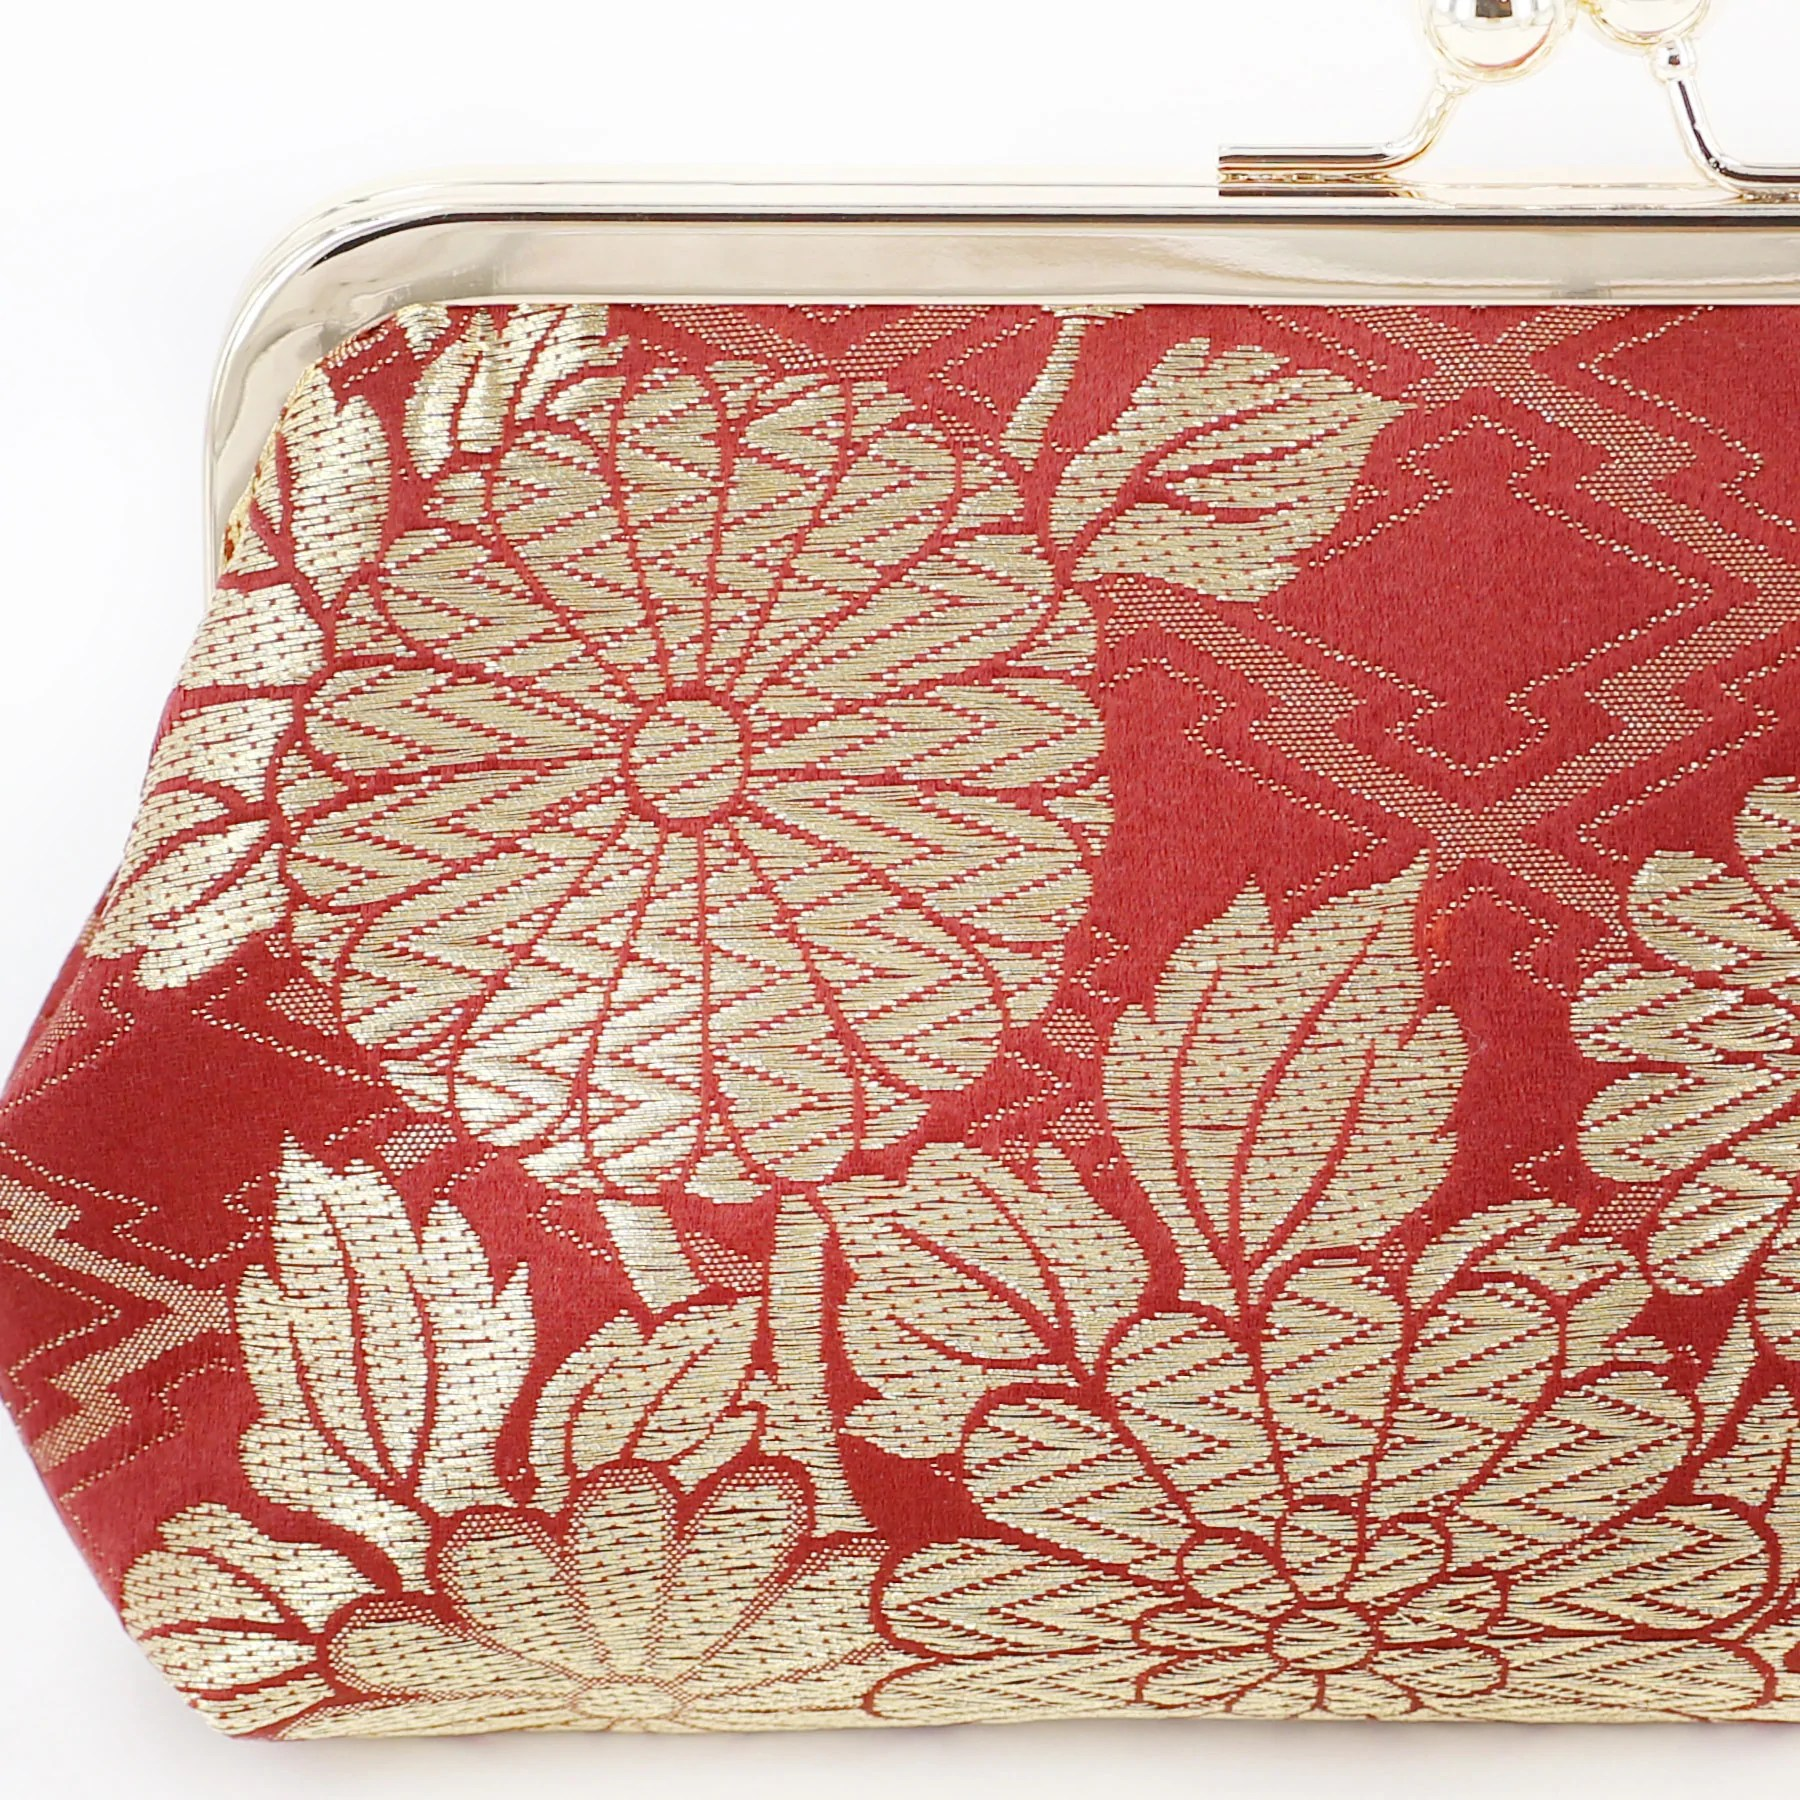 Upcycled From Chinese Kwa Embroidery Chrysanthemum and Peony On